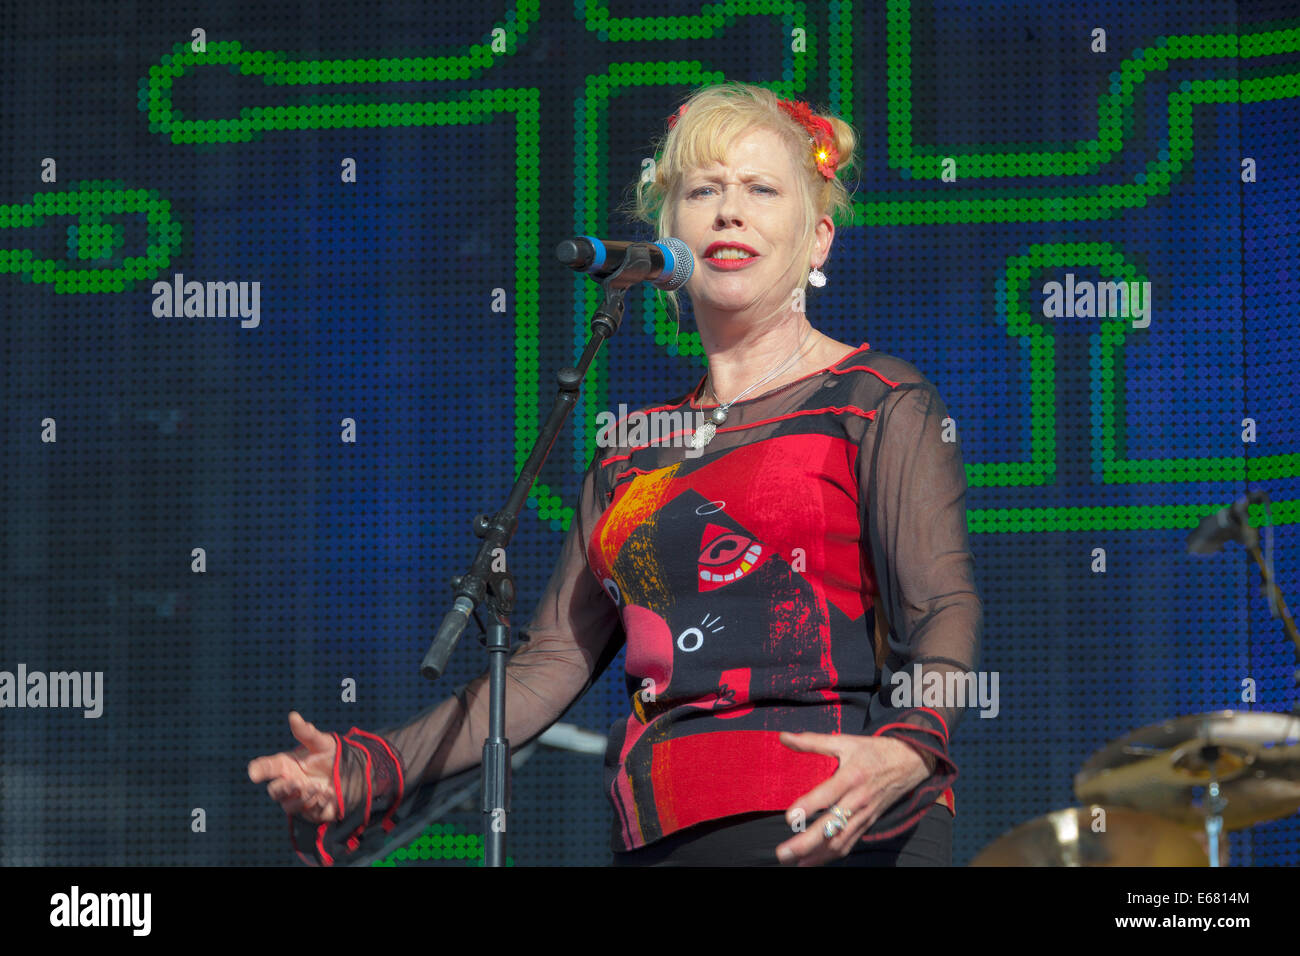 "Remenham Henley-on-Thames Oxfordshire UK. 17 August 2014. Singer HAZEL O'CONNOR performs on-stage at the 2014 ""Rewind Stock Photo"